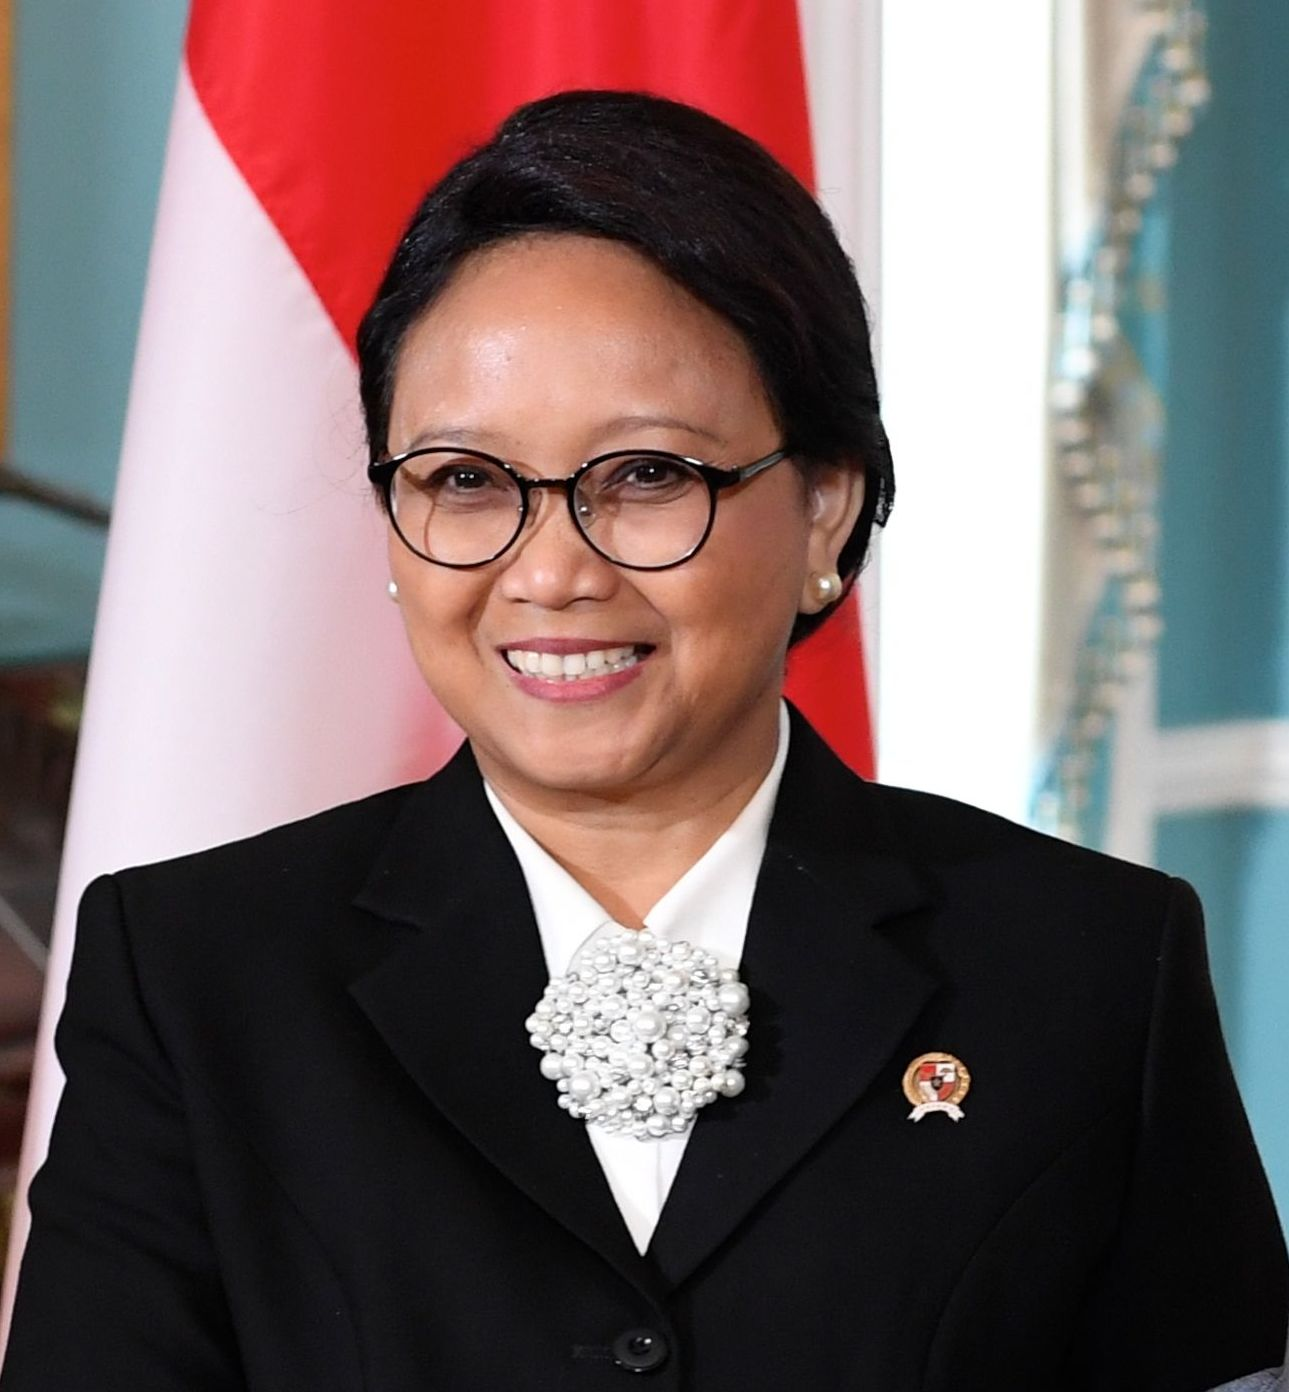 Indonesia says foreign minister's planned visit to Myanmar not going ahead